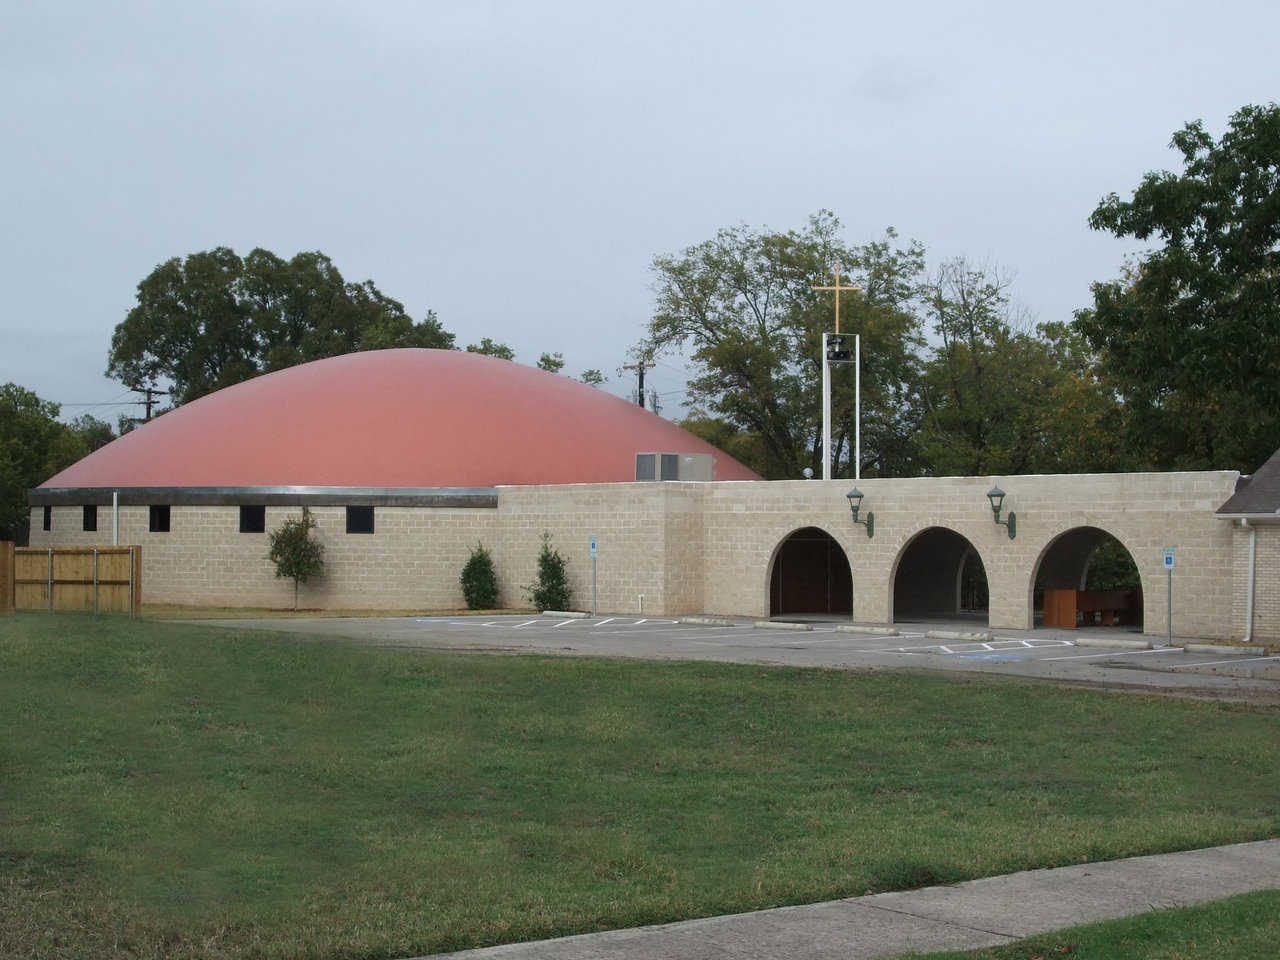 Architectural blending — A long wall connects St. Joseph's new Monolithic Dome church with the original church, a small, traditional structure that now serves as the Parish Hall. Both the connecting wall and the stemwall of the dome are made of cut face block that looks like brick.